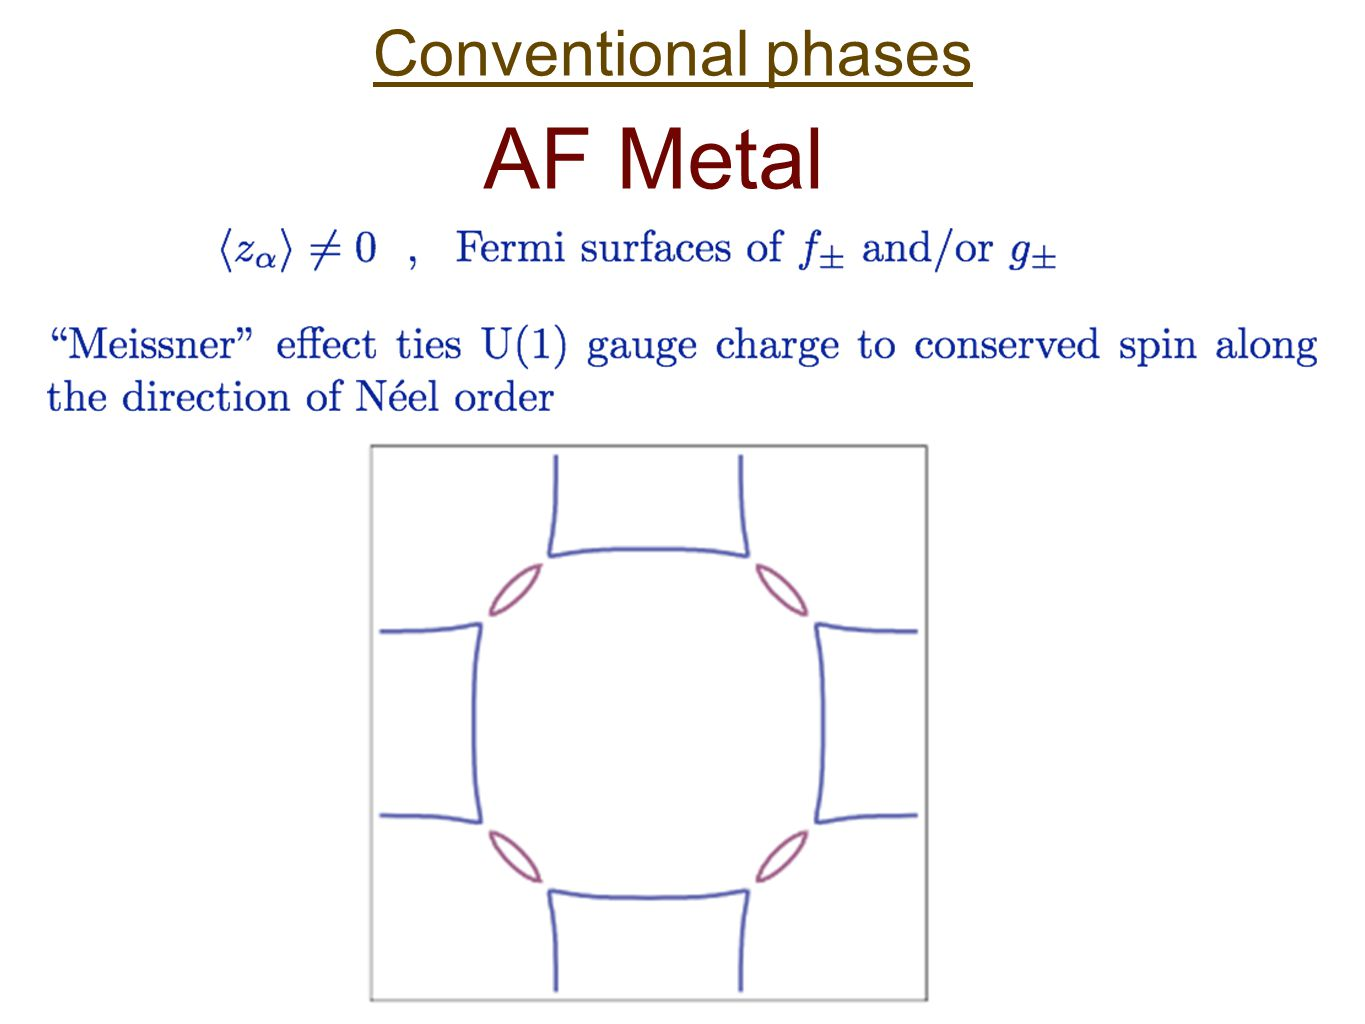 Conventional phases AF Metal